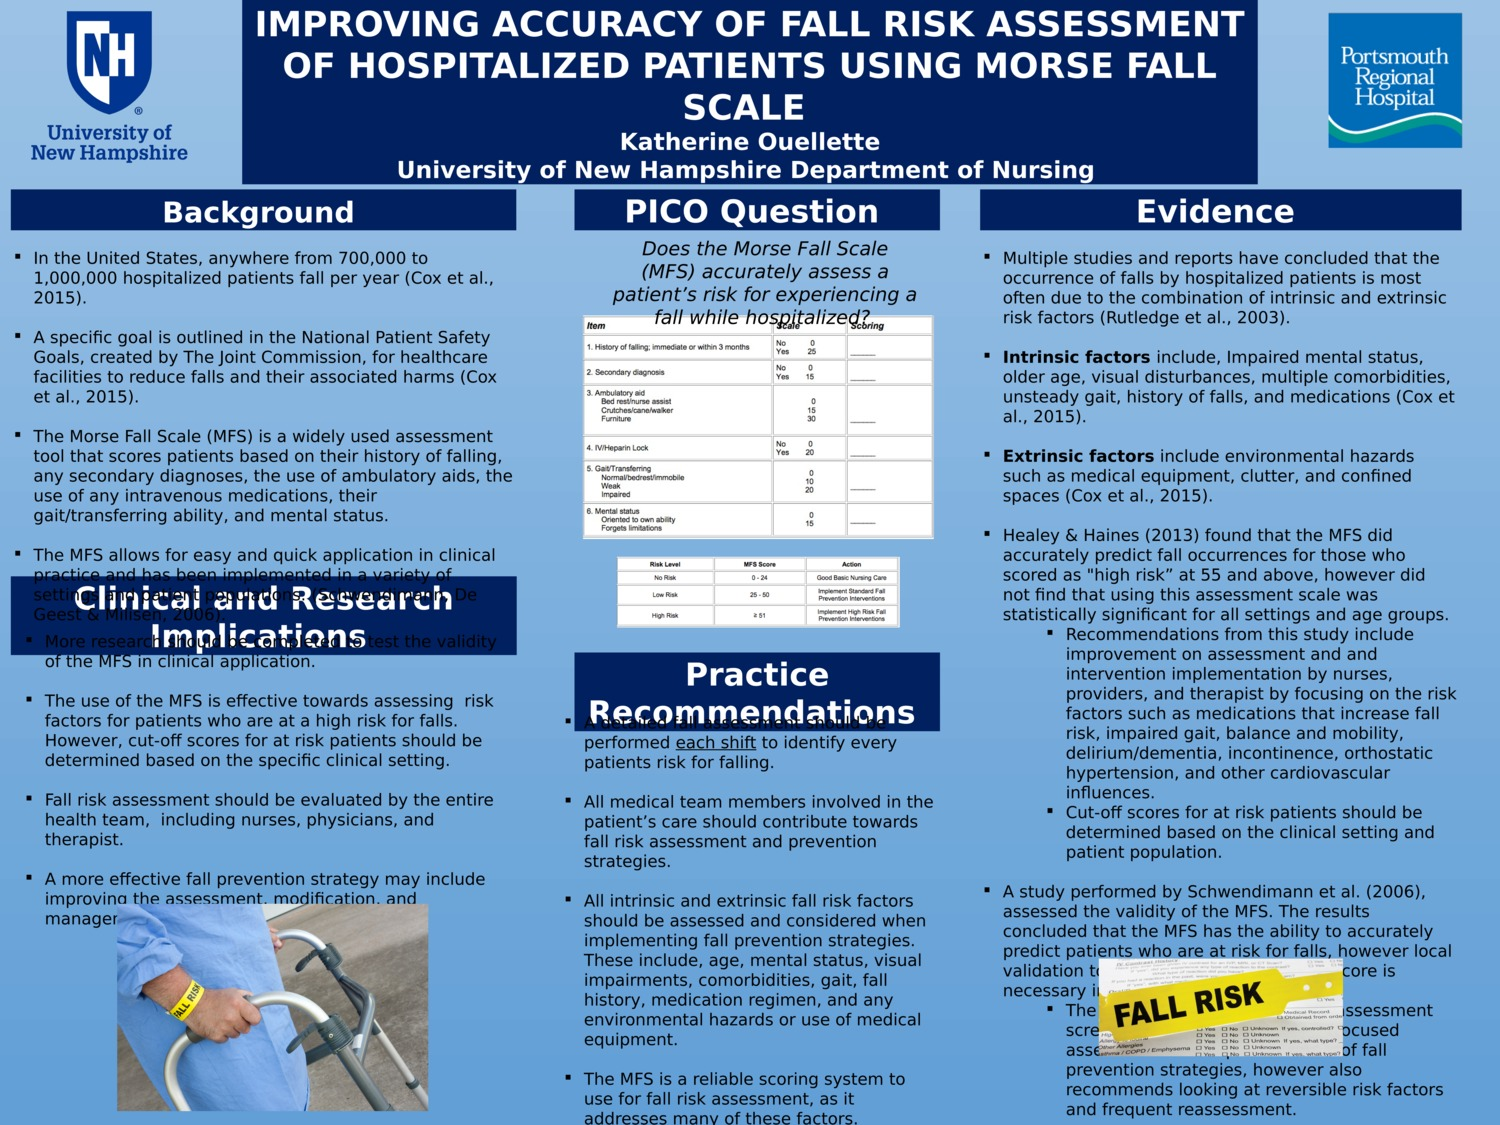 Improving Accuracy Of Fall Risk Assessment Of Hospitalized Patients Using Morse Fall Scale  by keo2002